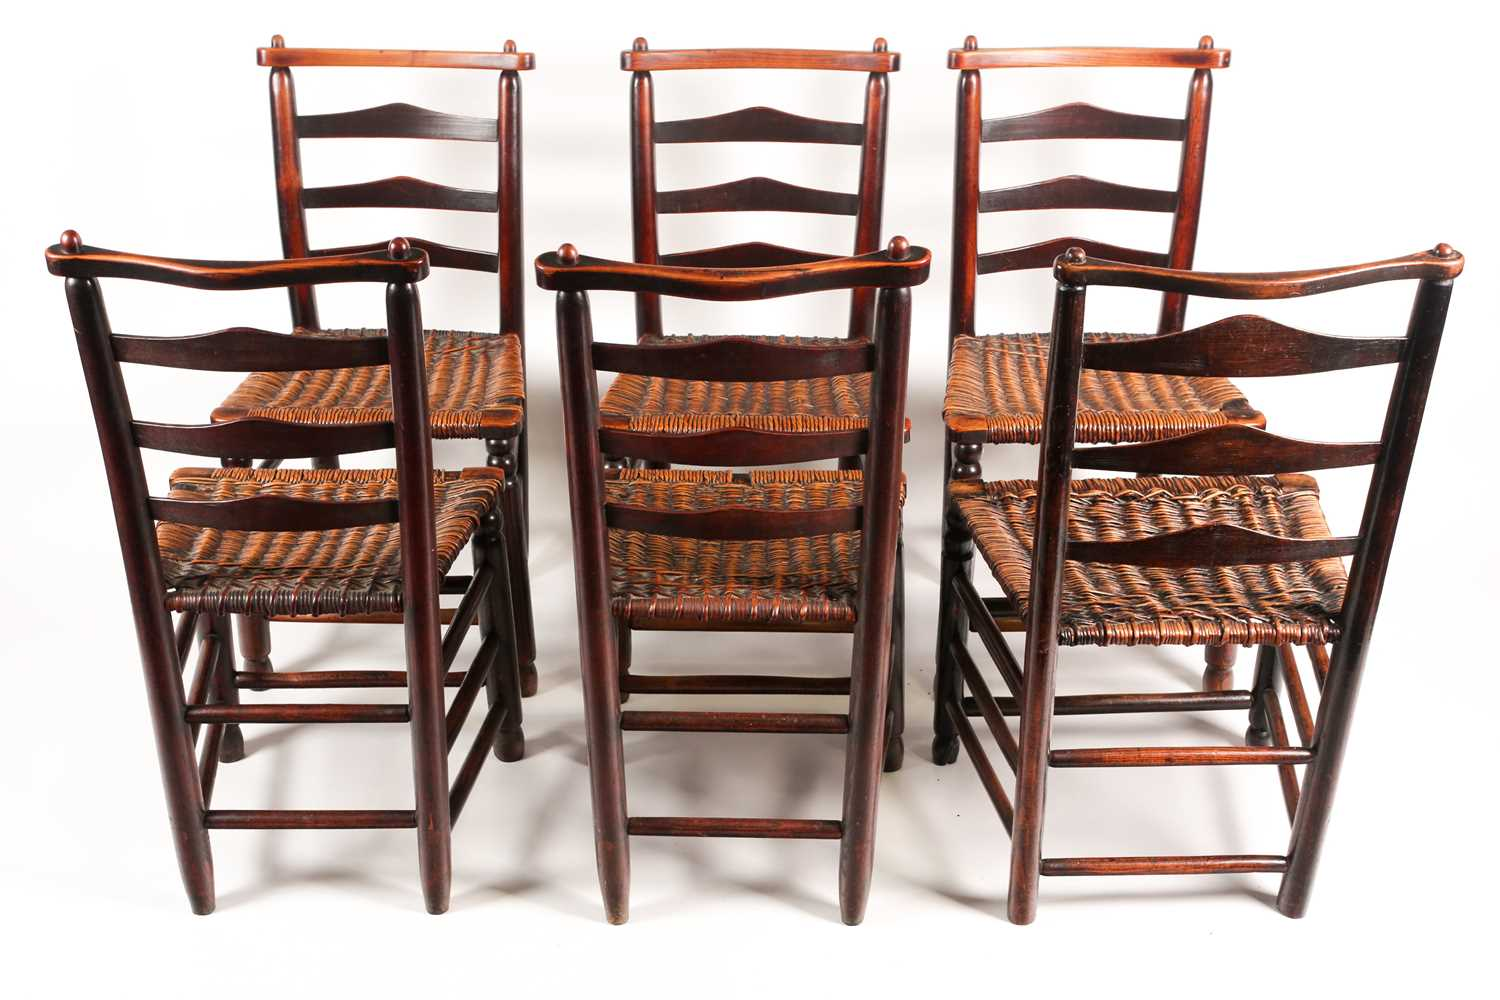 A set of six early 19th-century Macclesfield type ladder back dining chairs with distinctive - Image 3 of 3